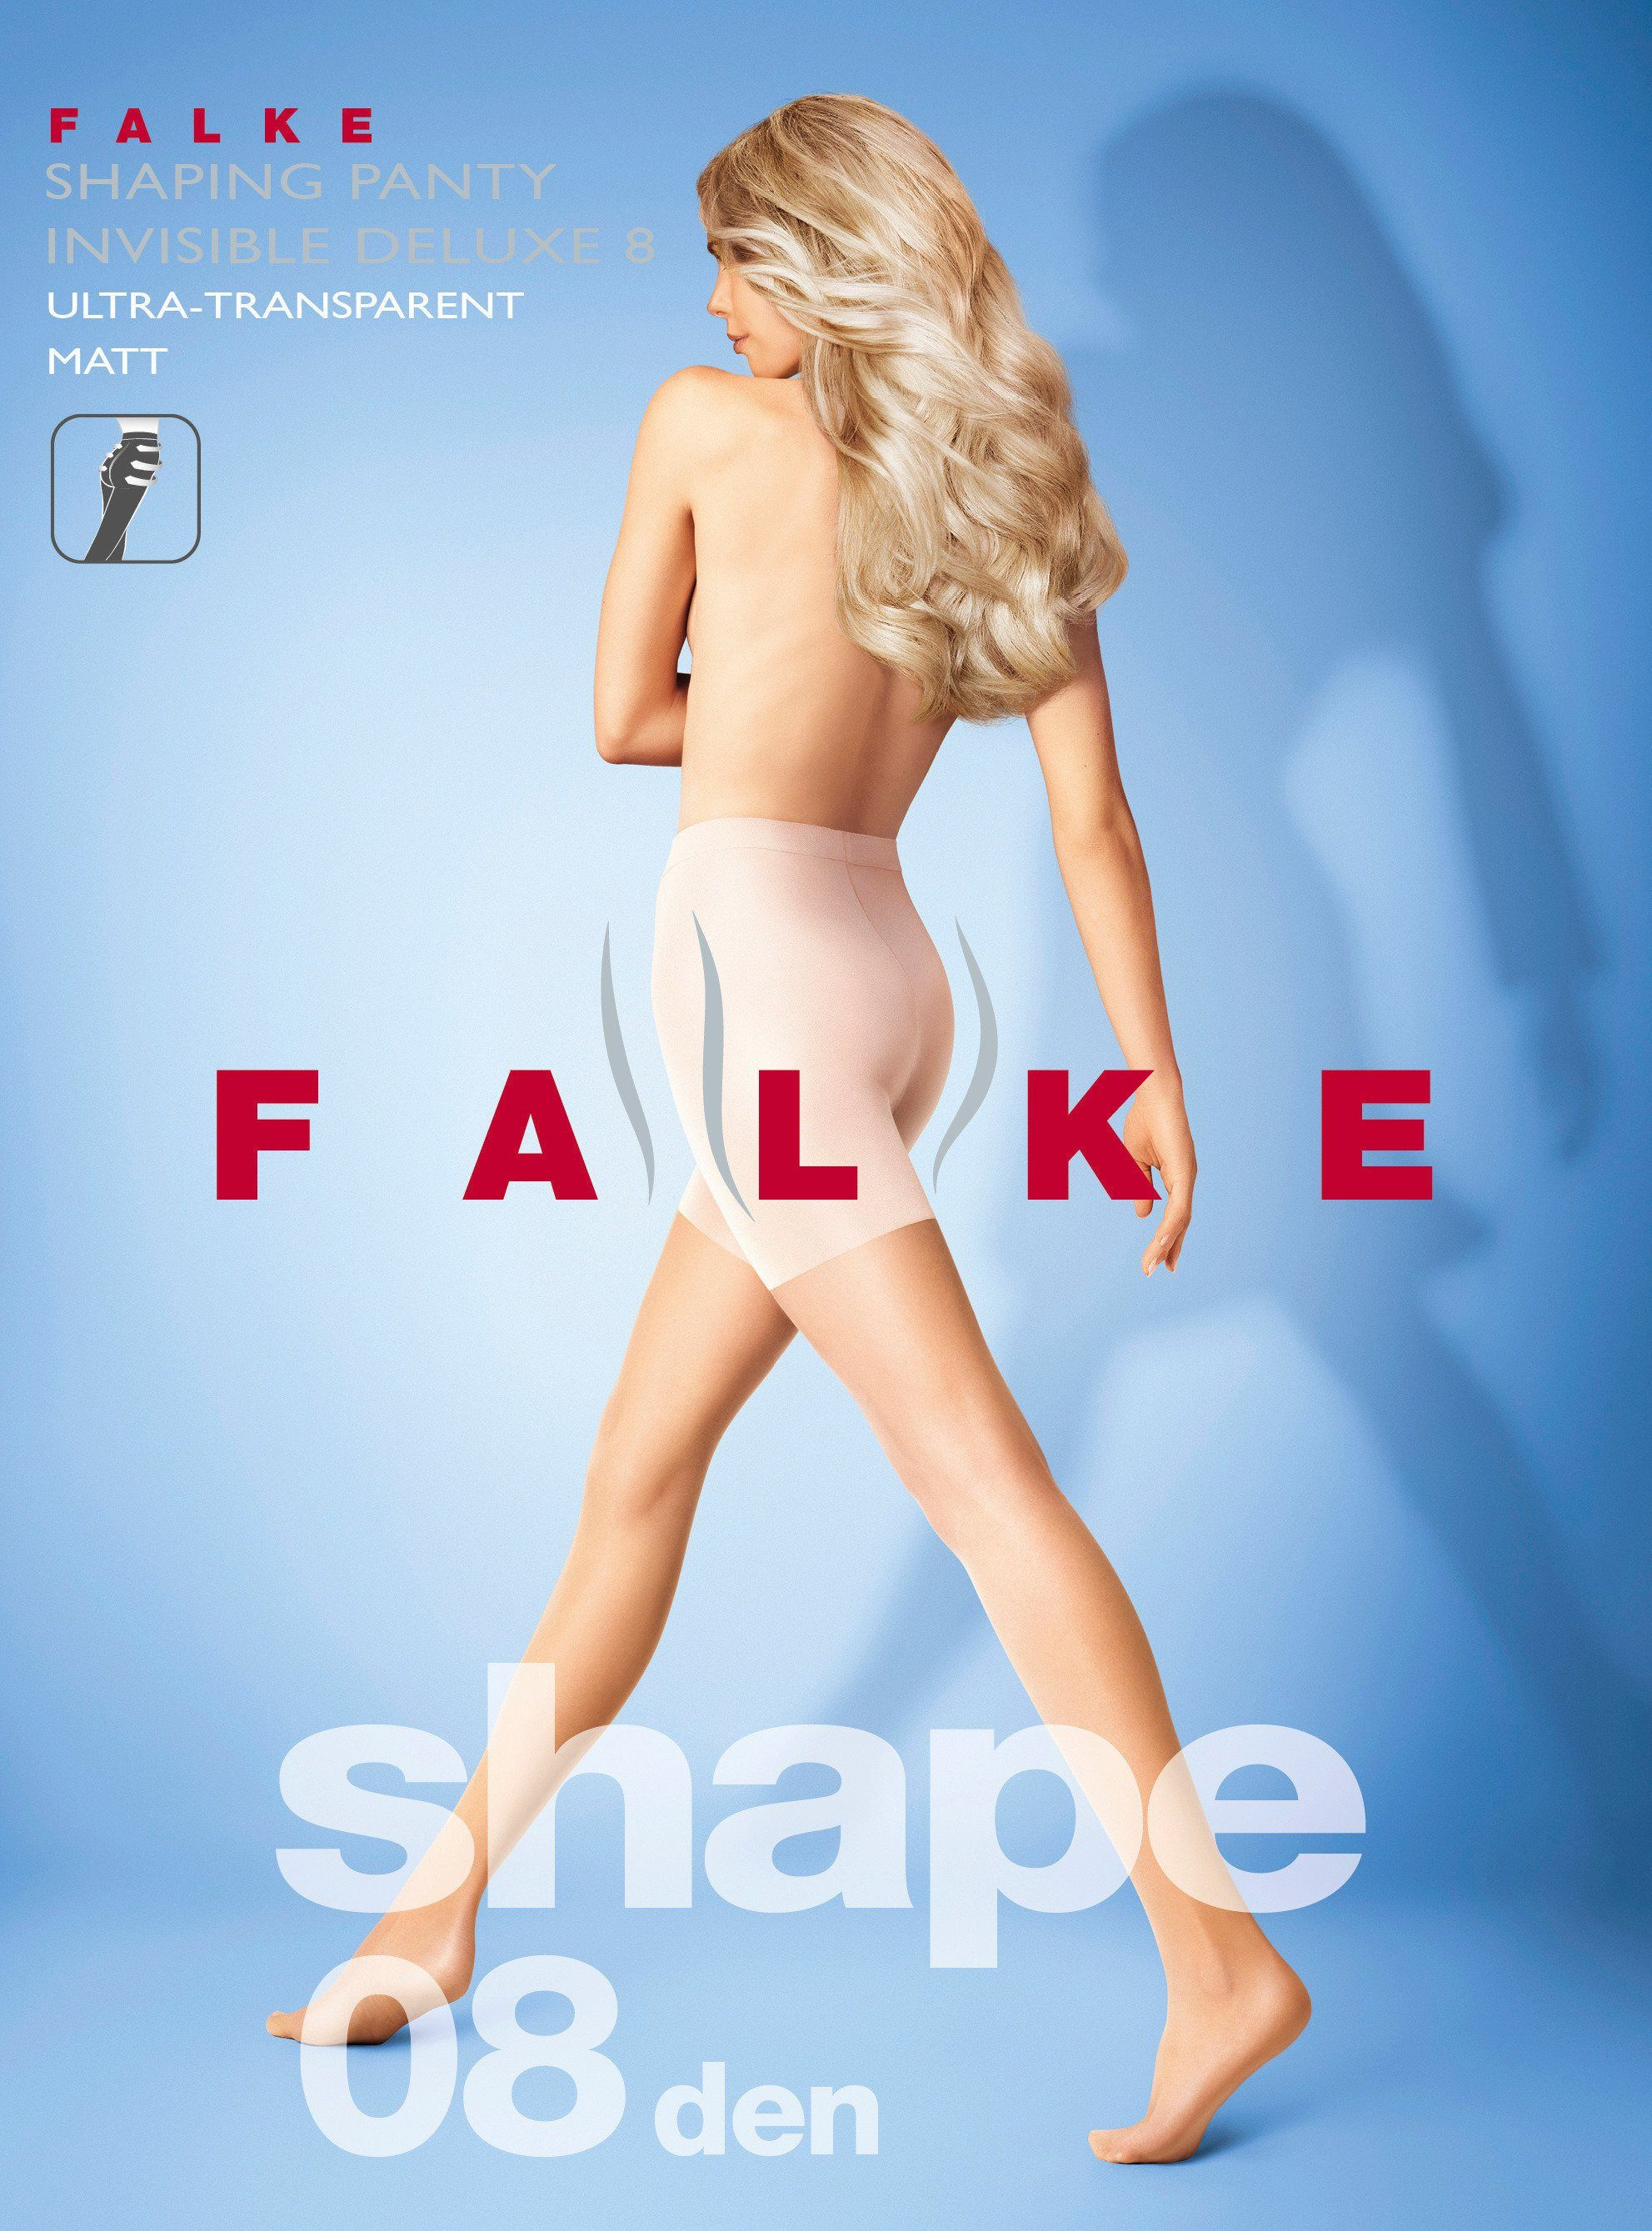 Falke Invisible Deluxe Shaping 8 DEN Tights in Black l